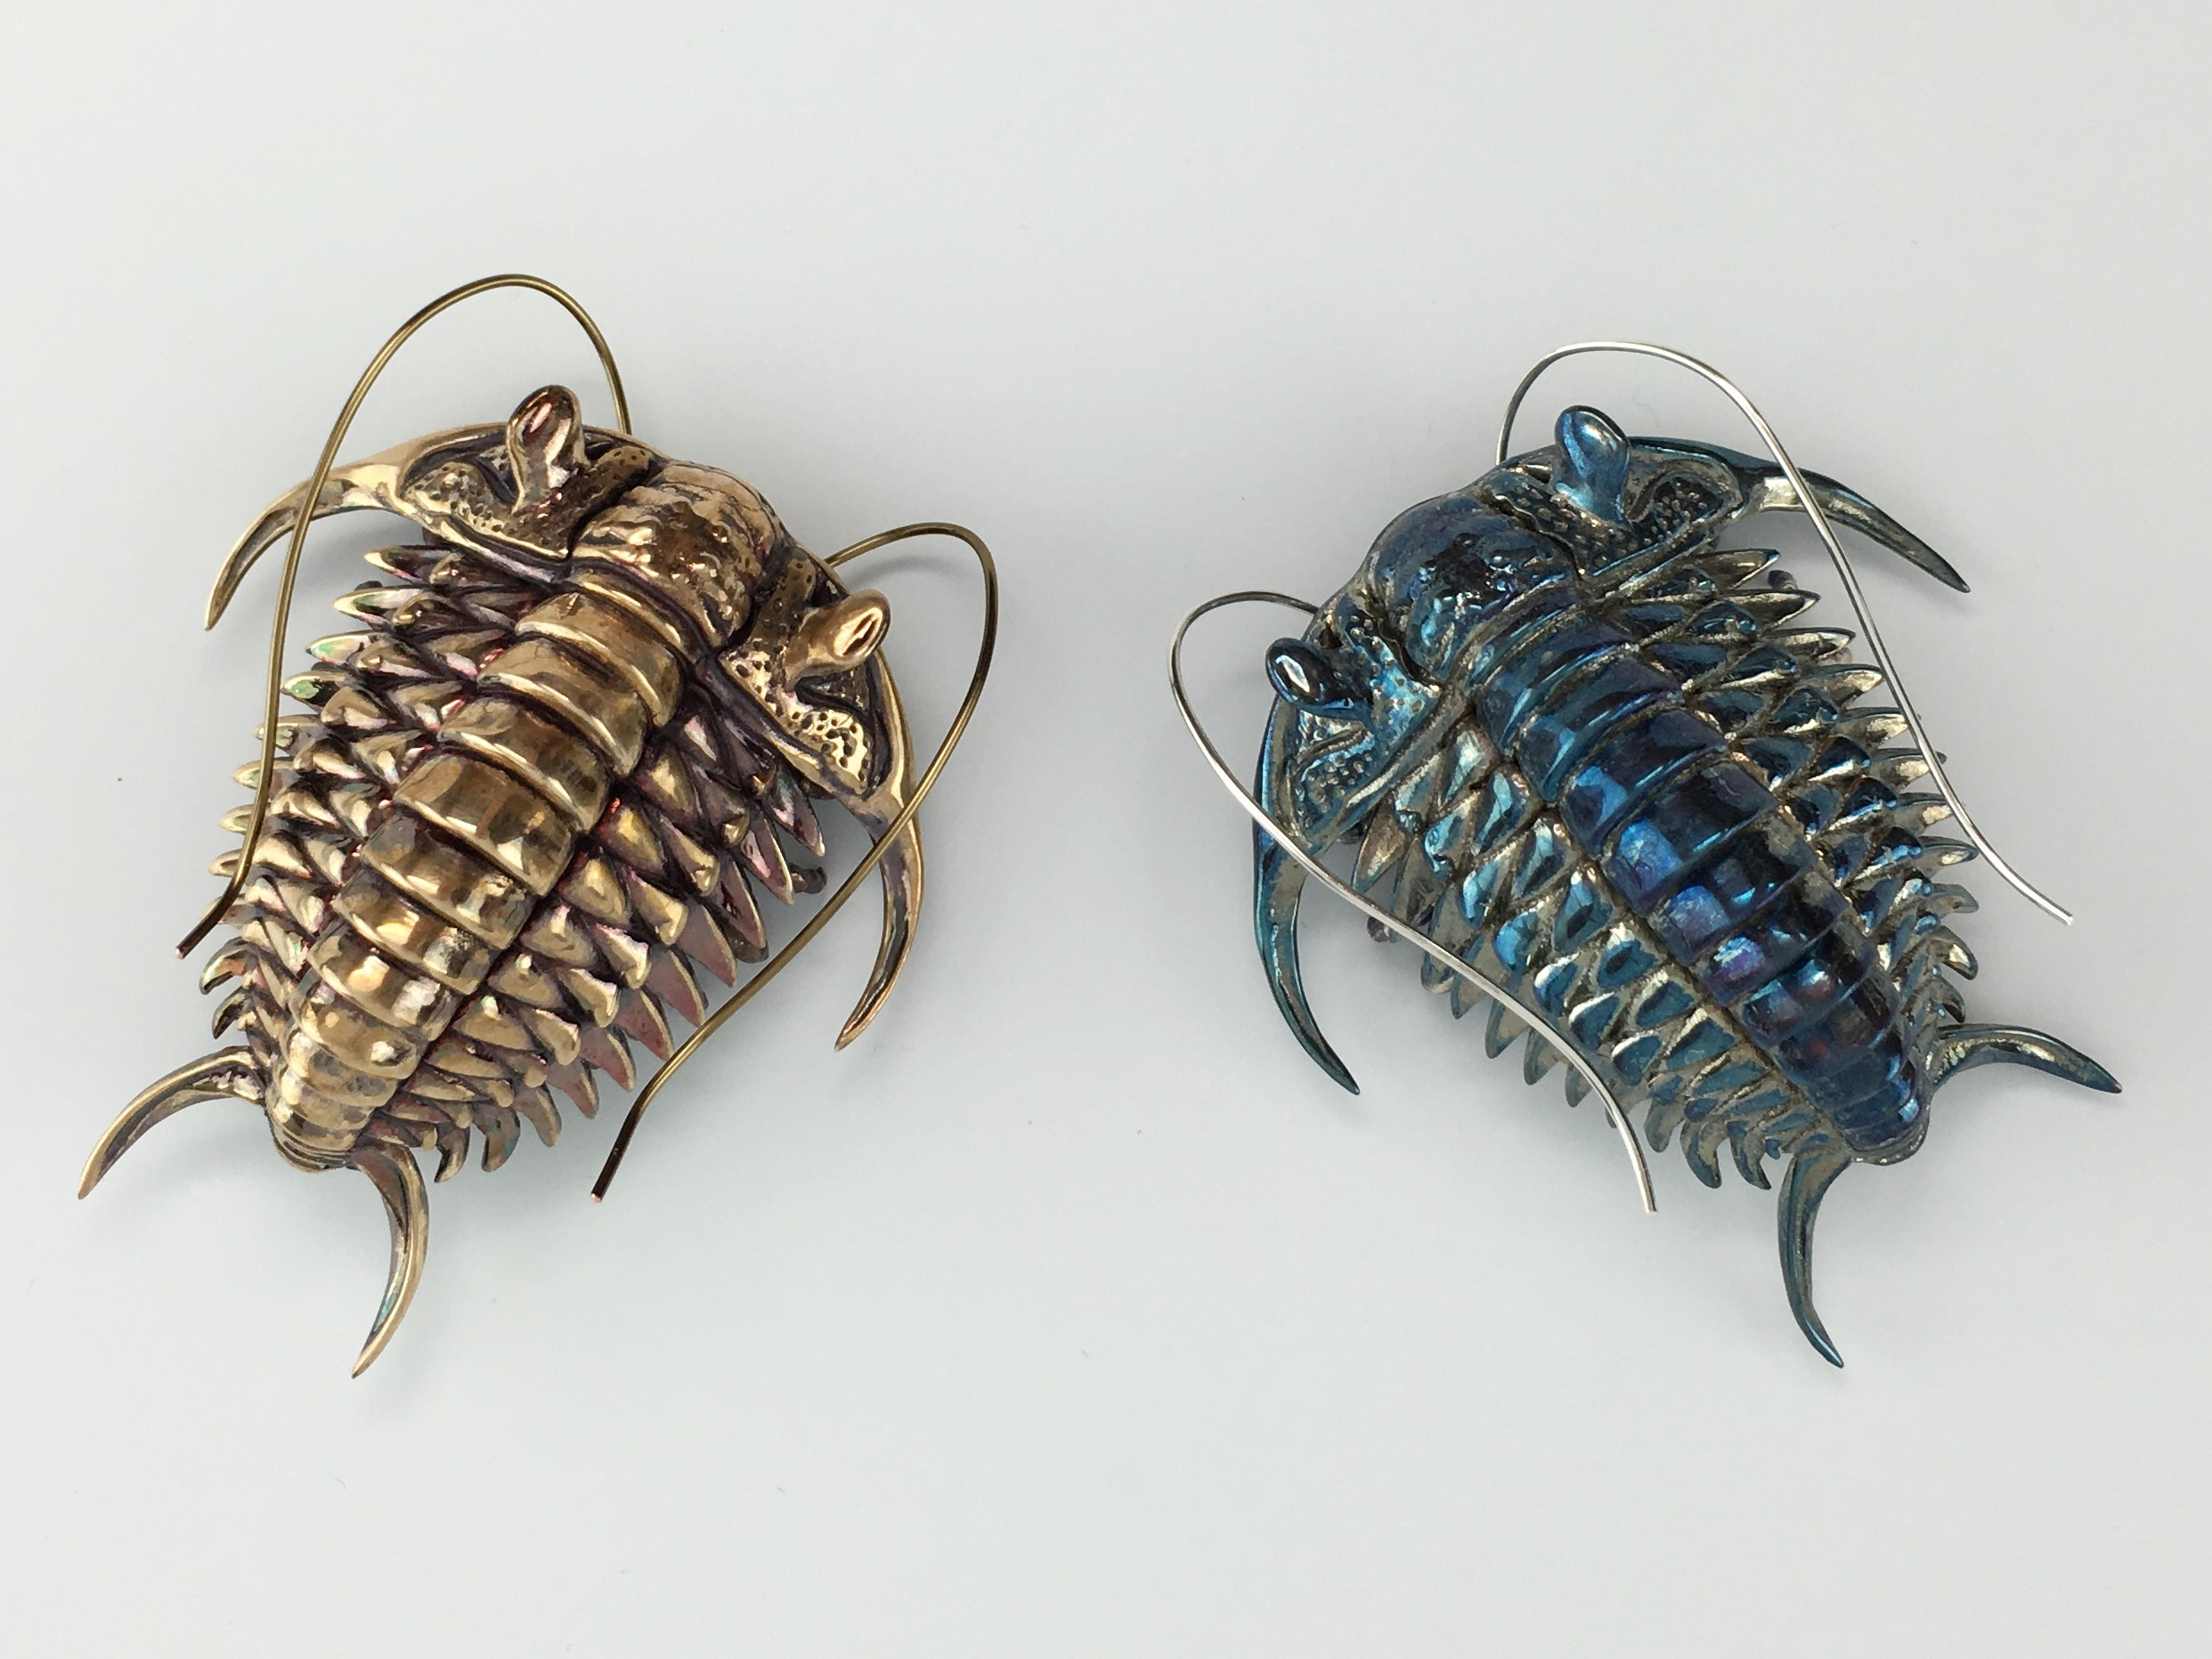 These 3D Printed Trilobites Are Absolutely Stunning